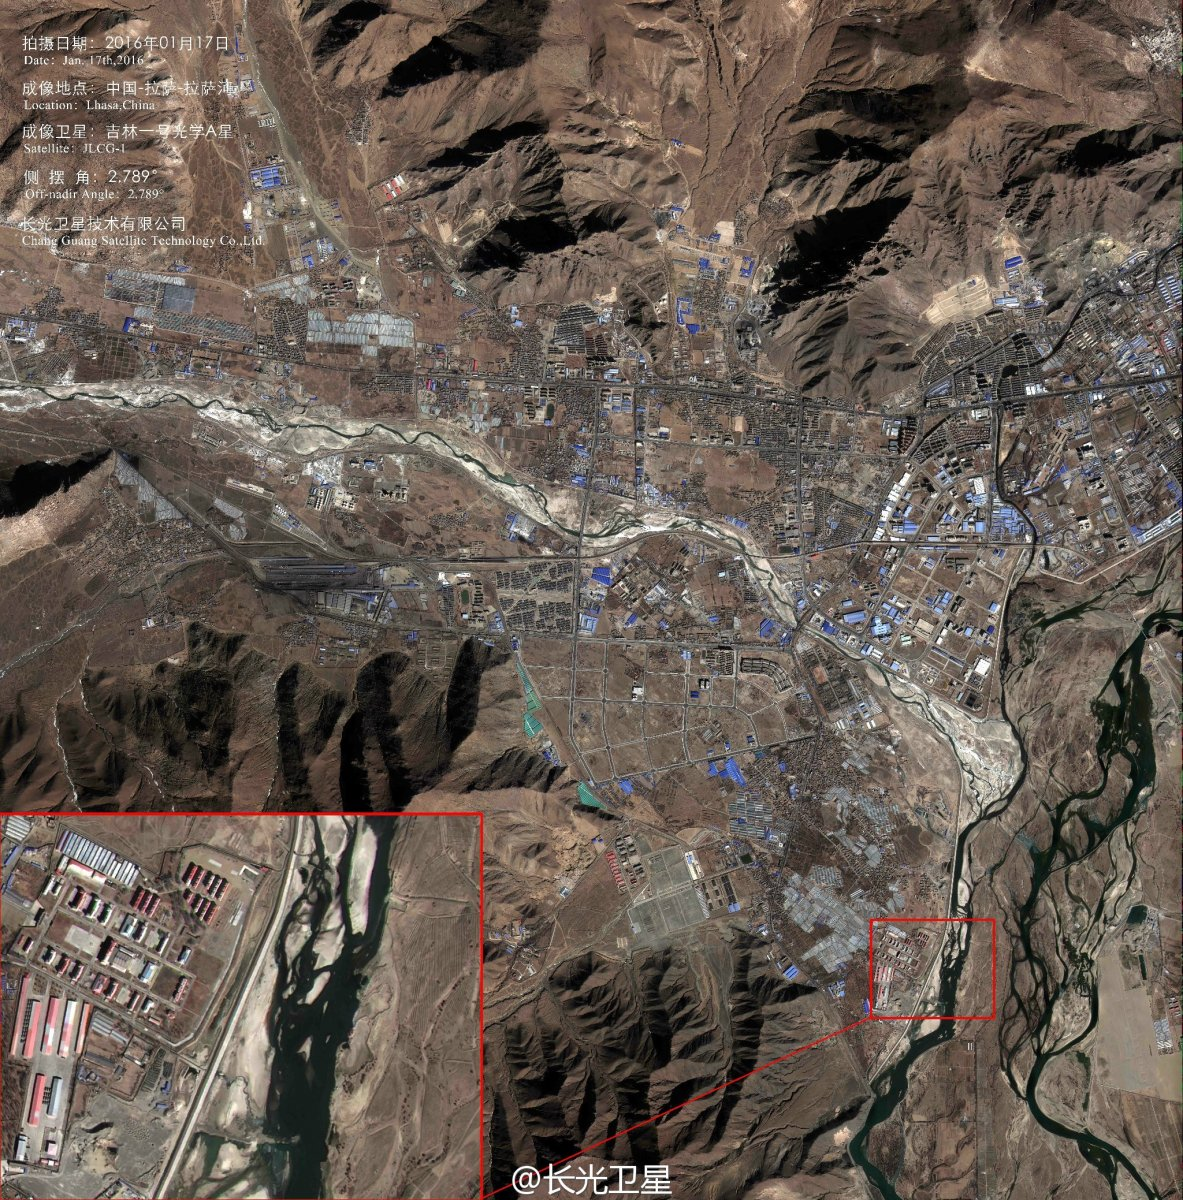 Jilin Chinas First Commercial Remote Sensing Satellites Aim To - Satellite picture of